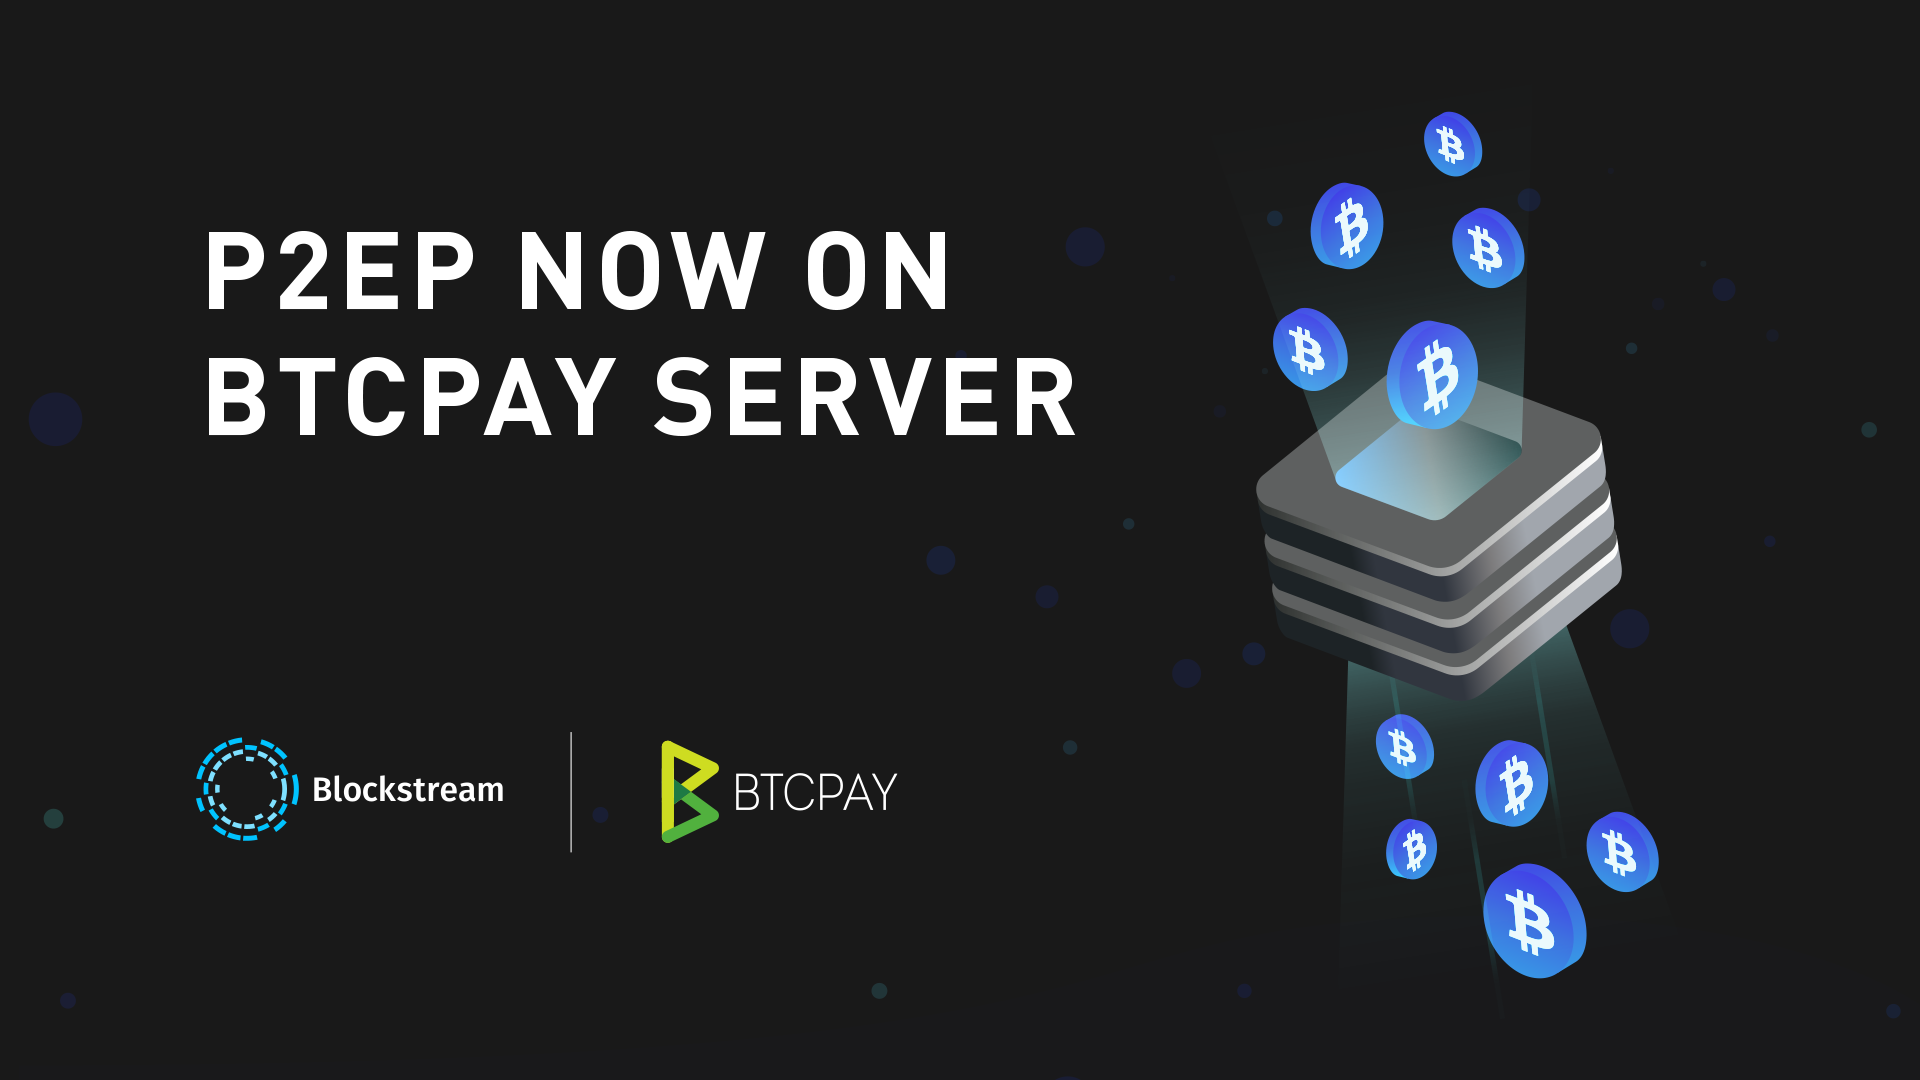 Bitcoin Privacy Improves With BTCPay Server's P2EP Implementation